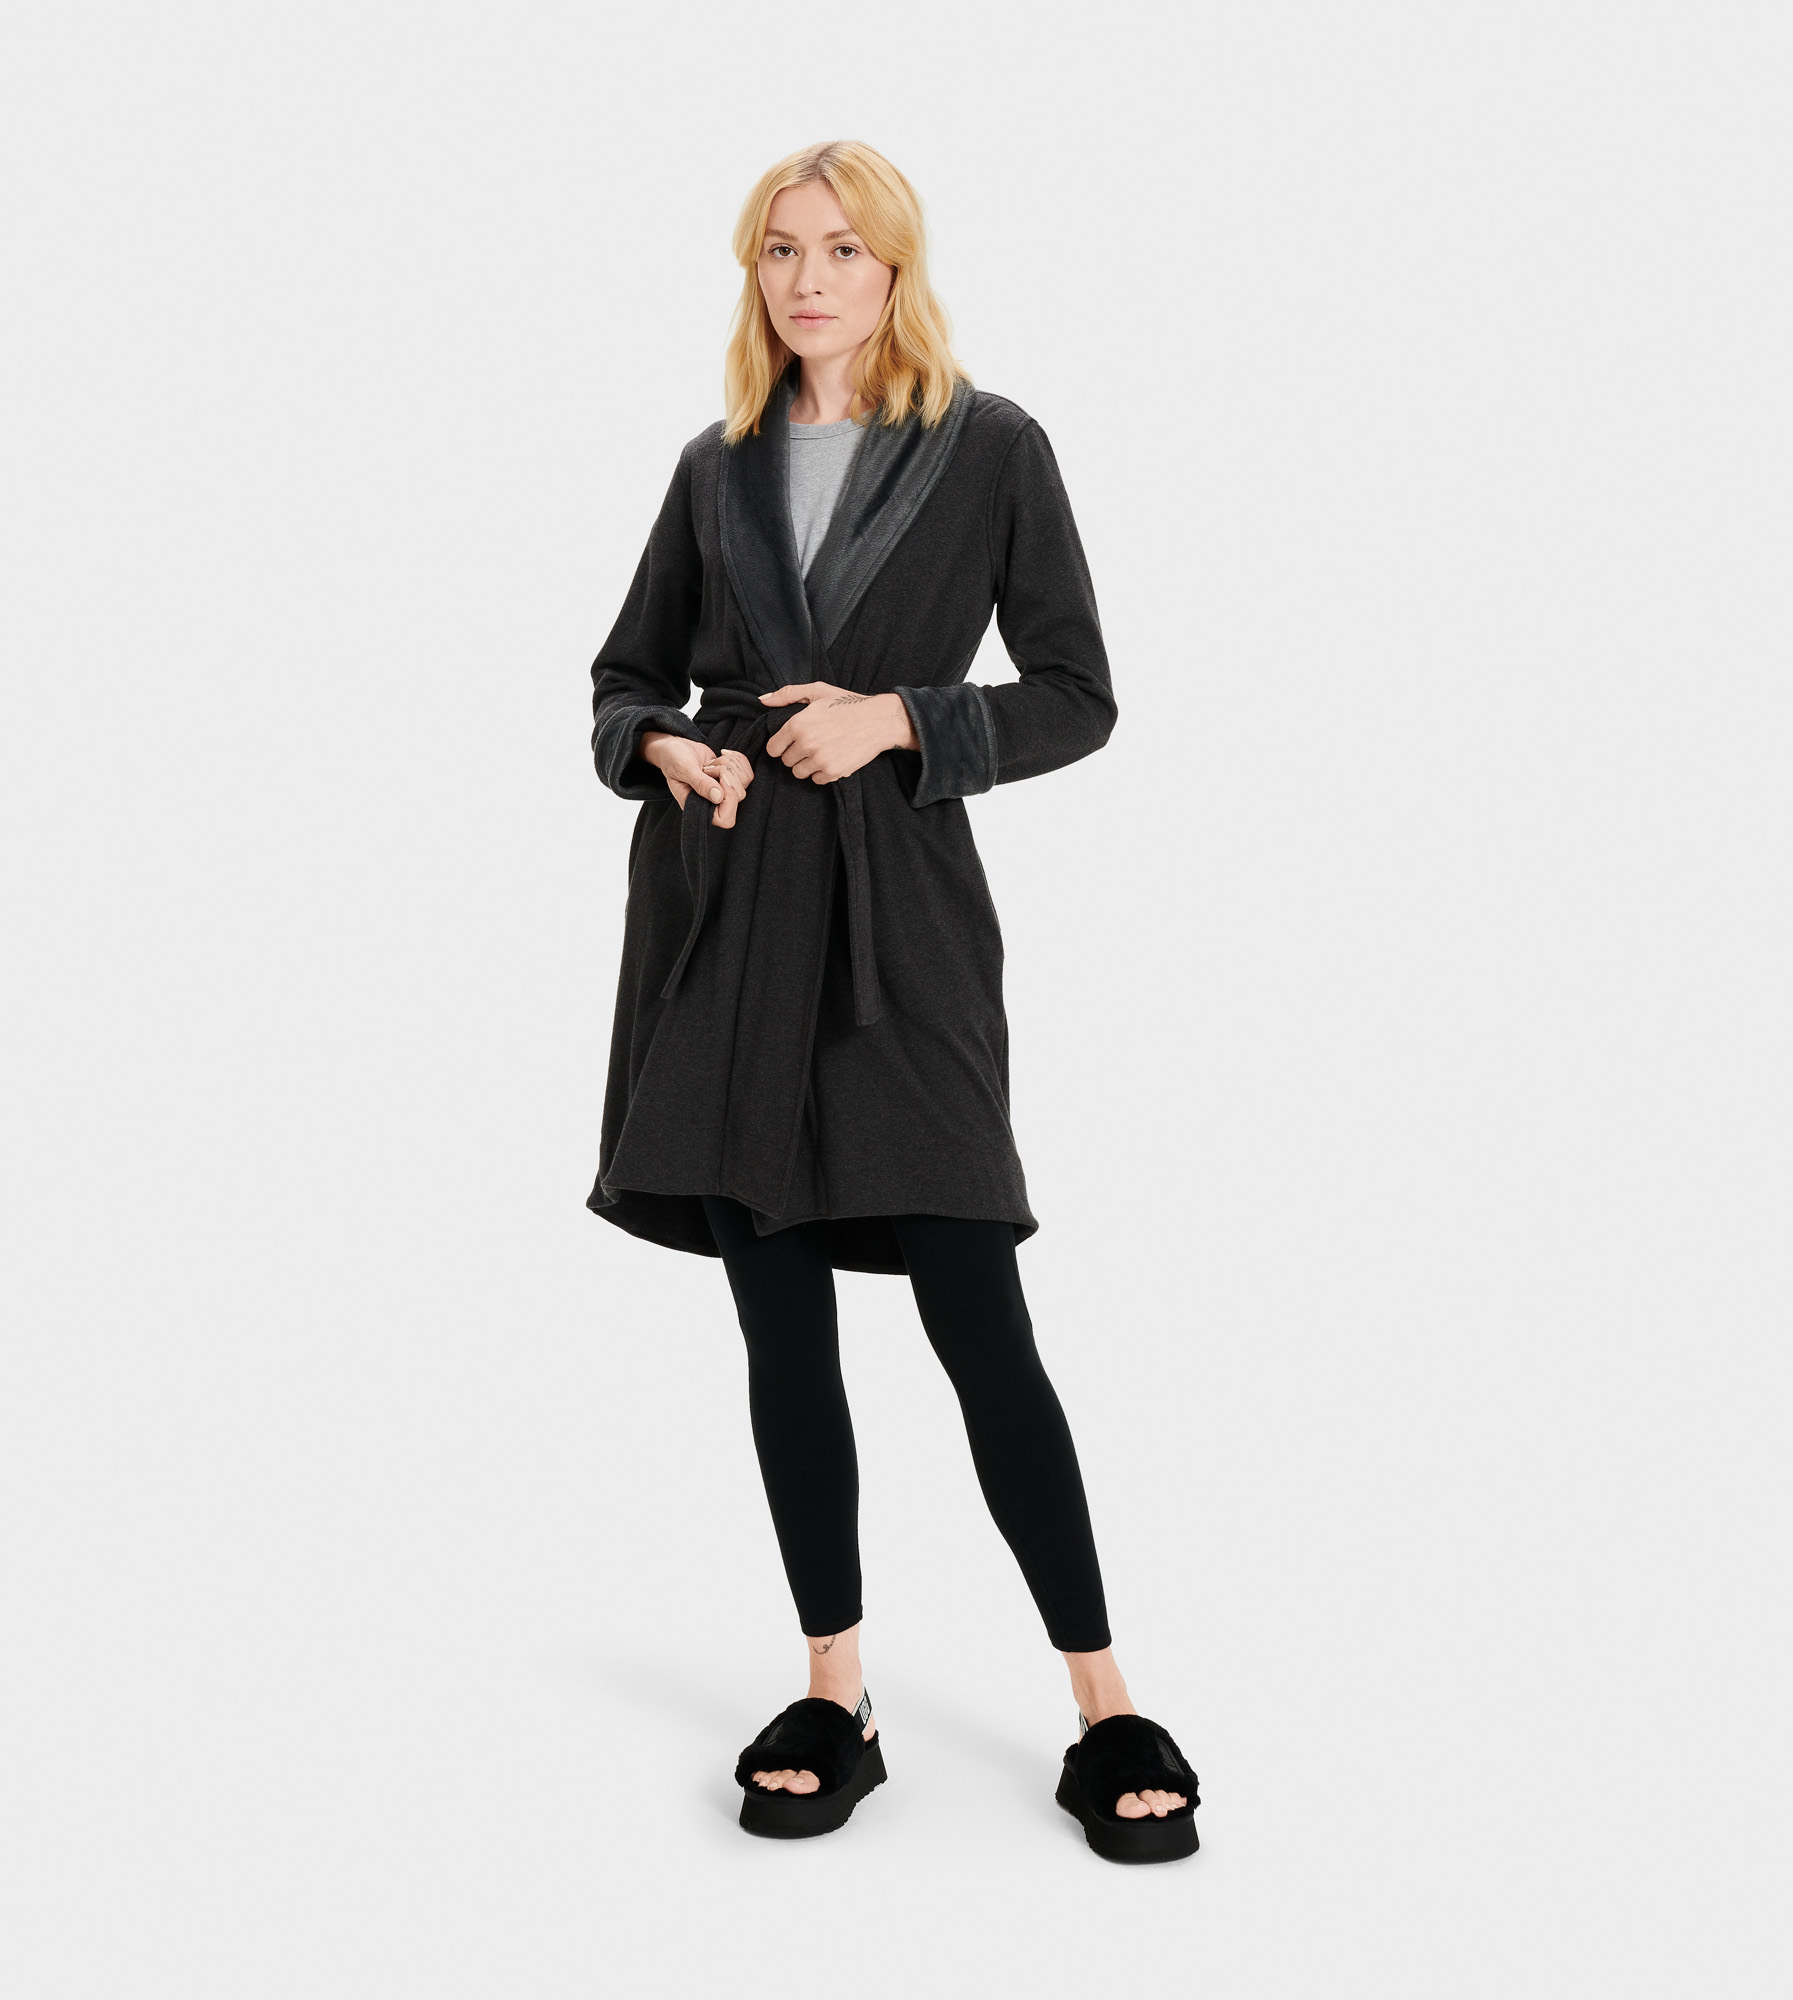 UGG Women's Blanche II Fleece Sleepwear in Black Bear Heather, Size S A shorter-length version of our best-selling Duffield robe, the Blanche is crafted with soft fleece, so it feels like wrapping yourself in a blanket. Pair with our fluffy slippers and pretend it's the weekend. Lightweight double knit fleece: 92% Cotton, 8% Elastane, 100% Polyester pile. Self belt. On-seam side pockets. 39.5 inch center back length. UGG Women's Blanche II Fleece Sleepwear in Black Bear Heather, Size S